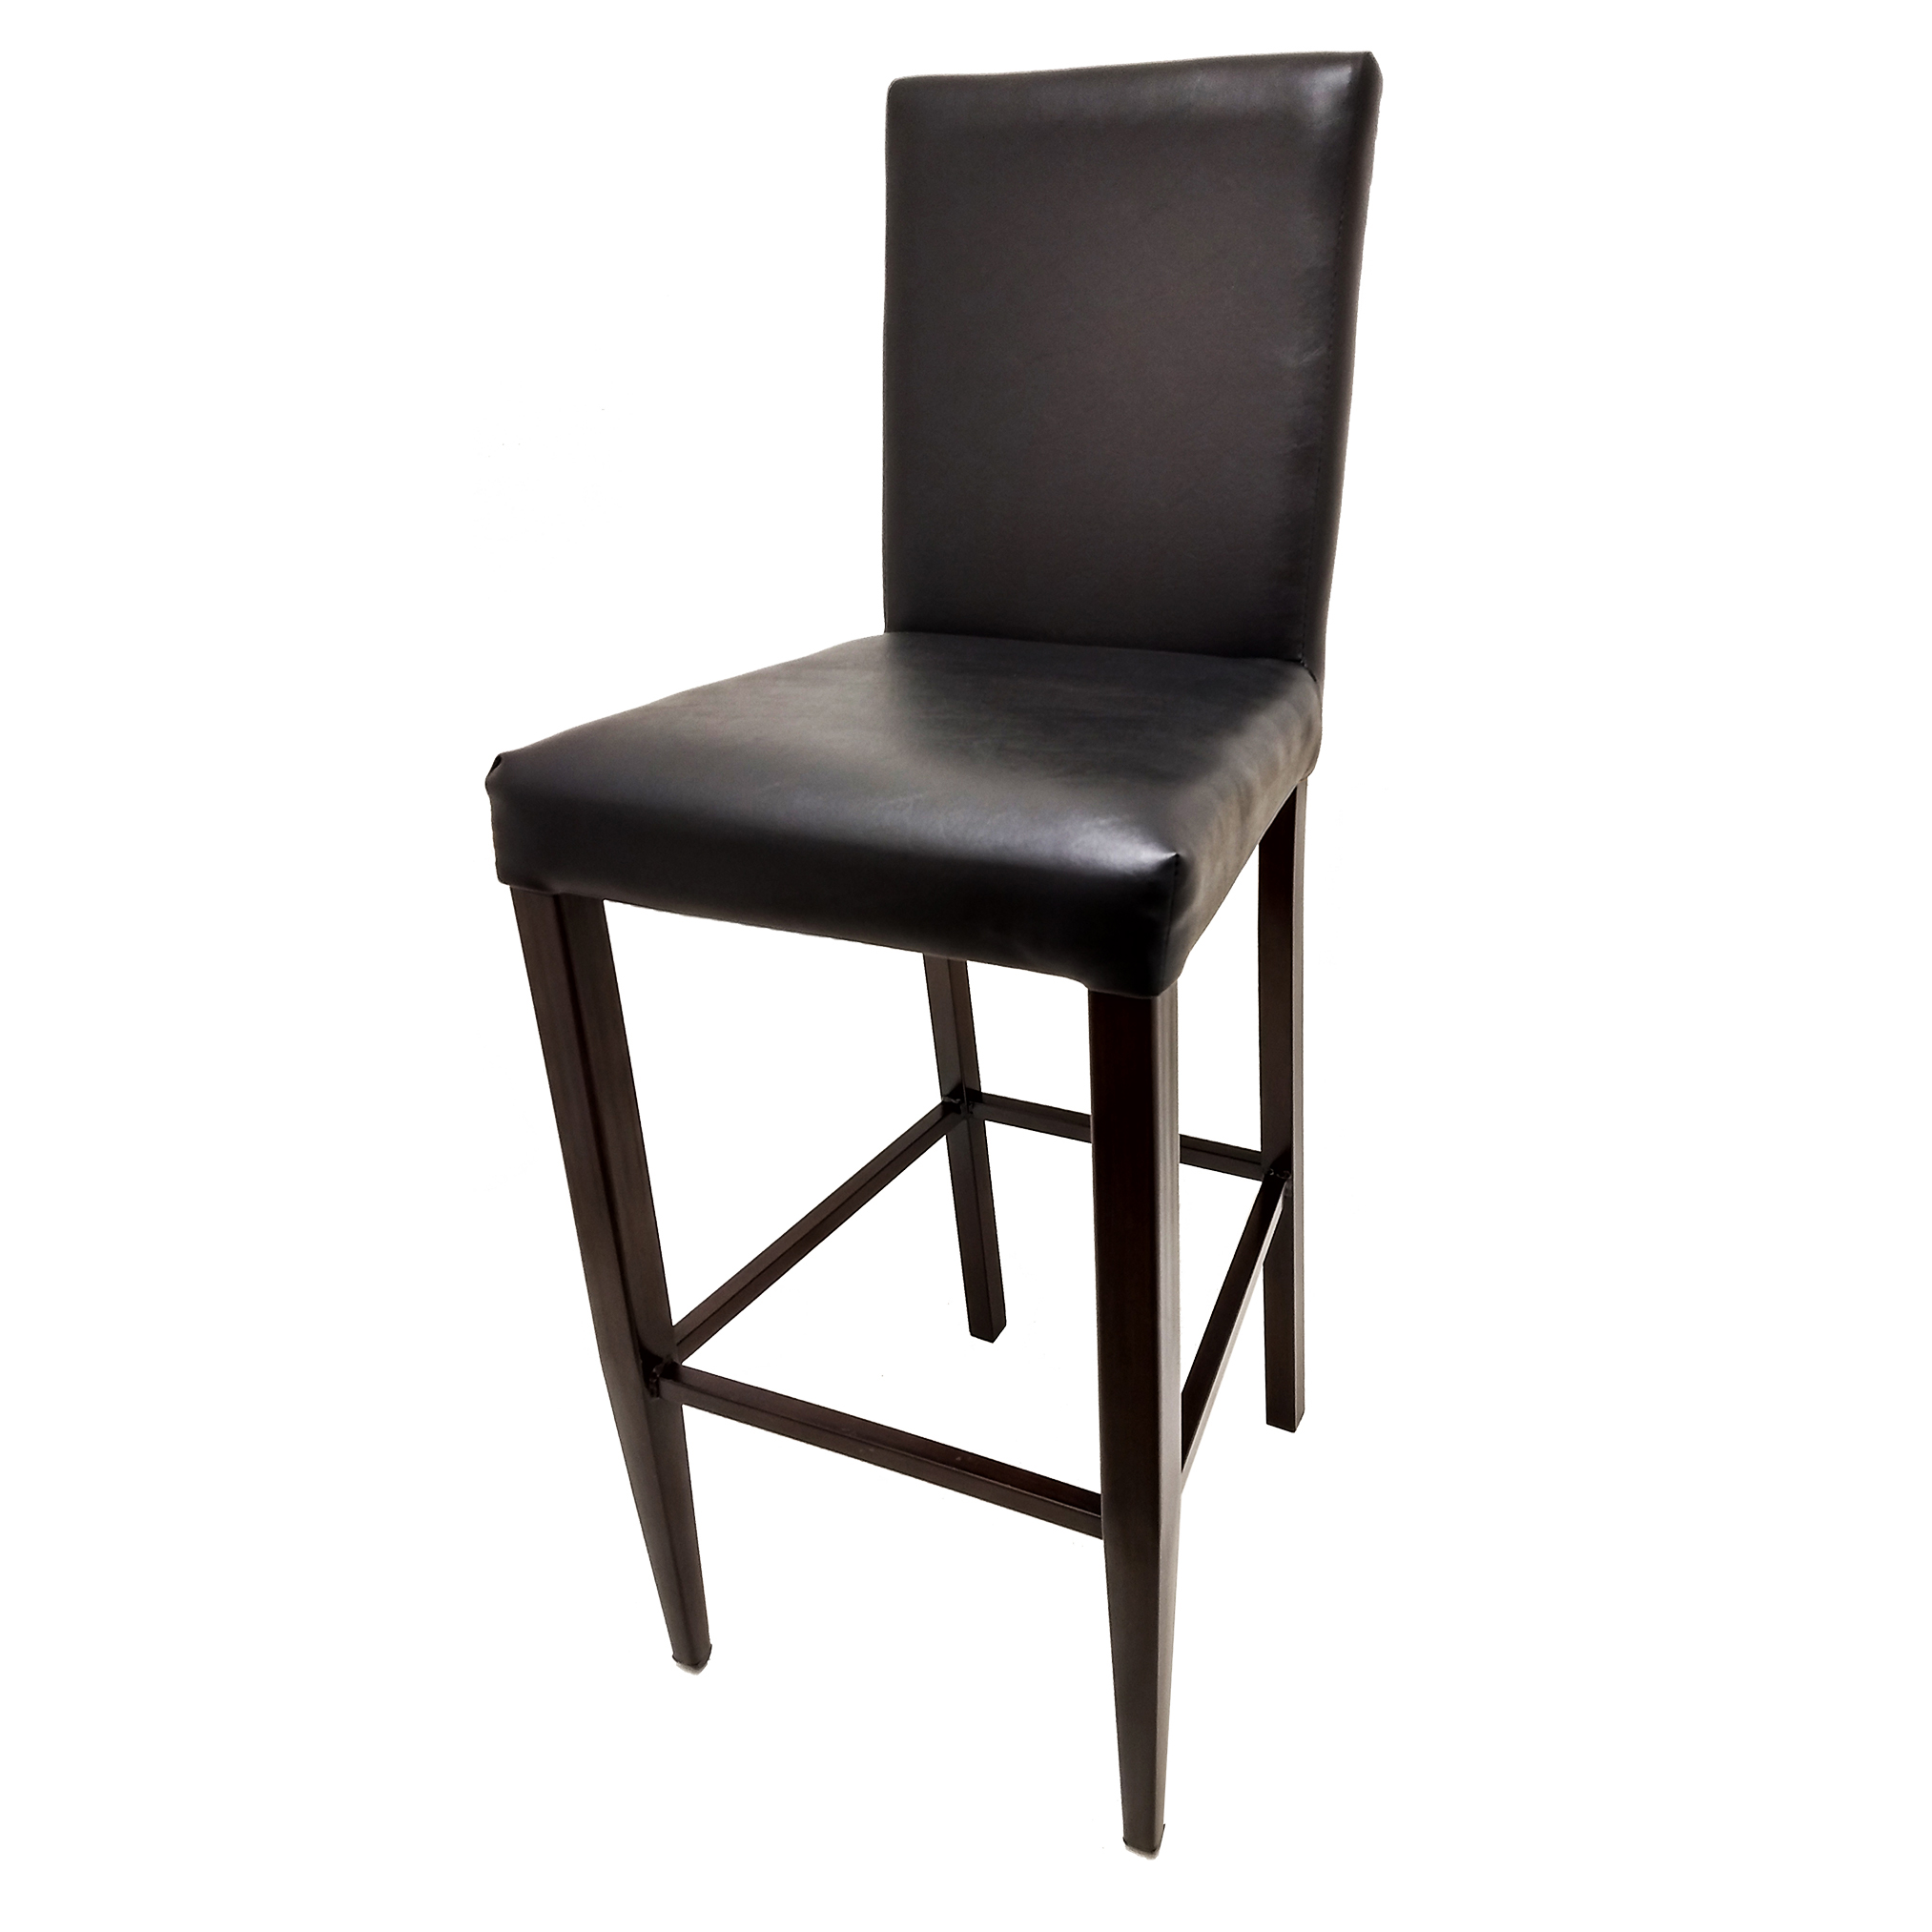 Oak Street BM-6037 bar stool, indoor